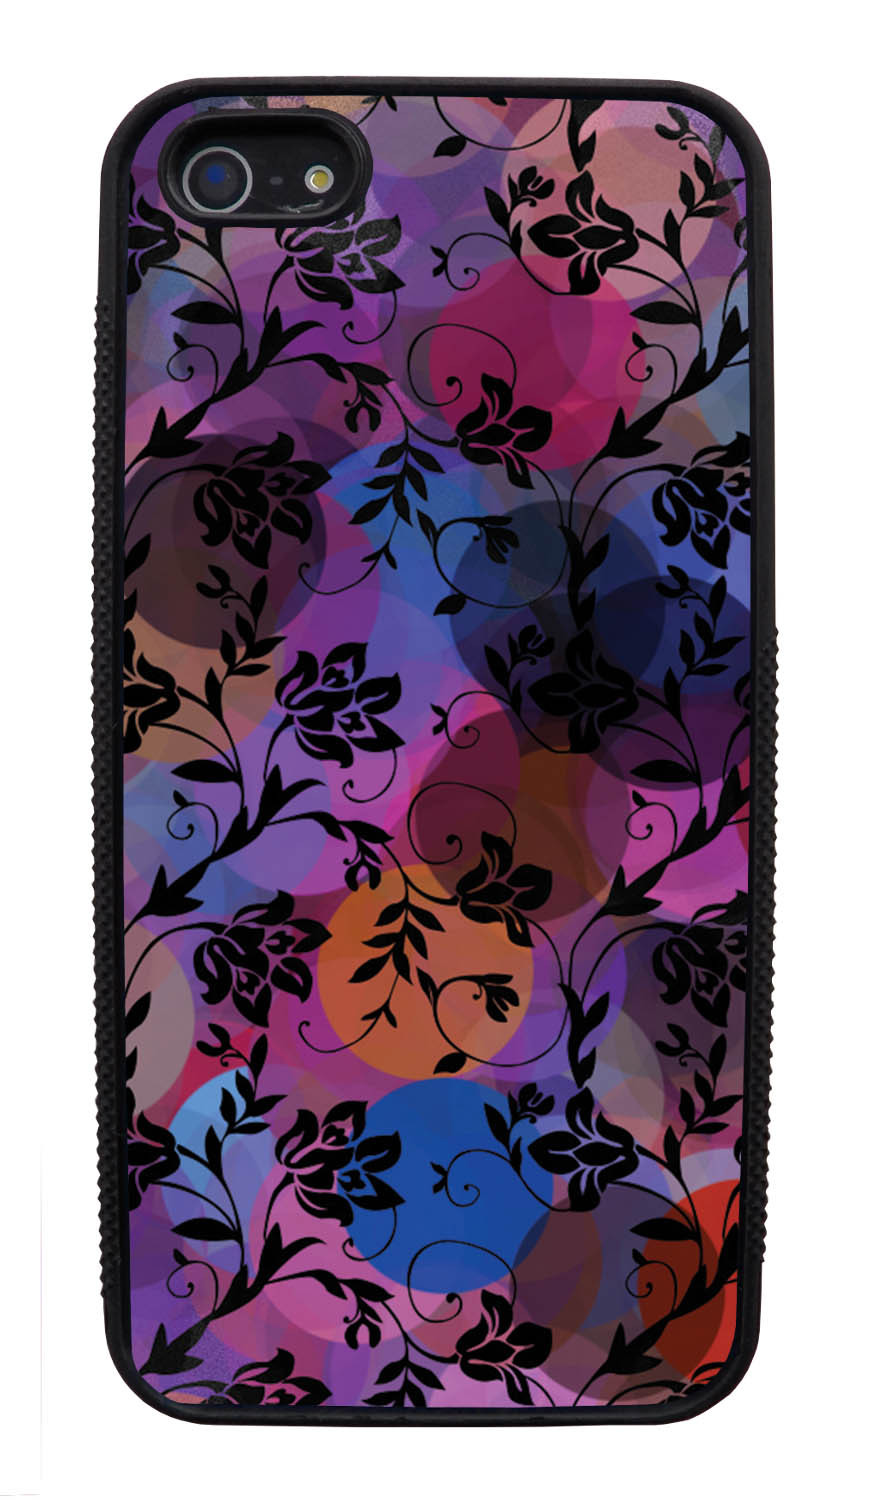 Apple iPhone 5 / 5S Flower Case - Black on Out-of-Focus Night Lights - Stencil Cutout - Black Slim Rubber Case